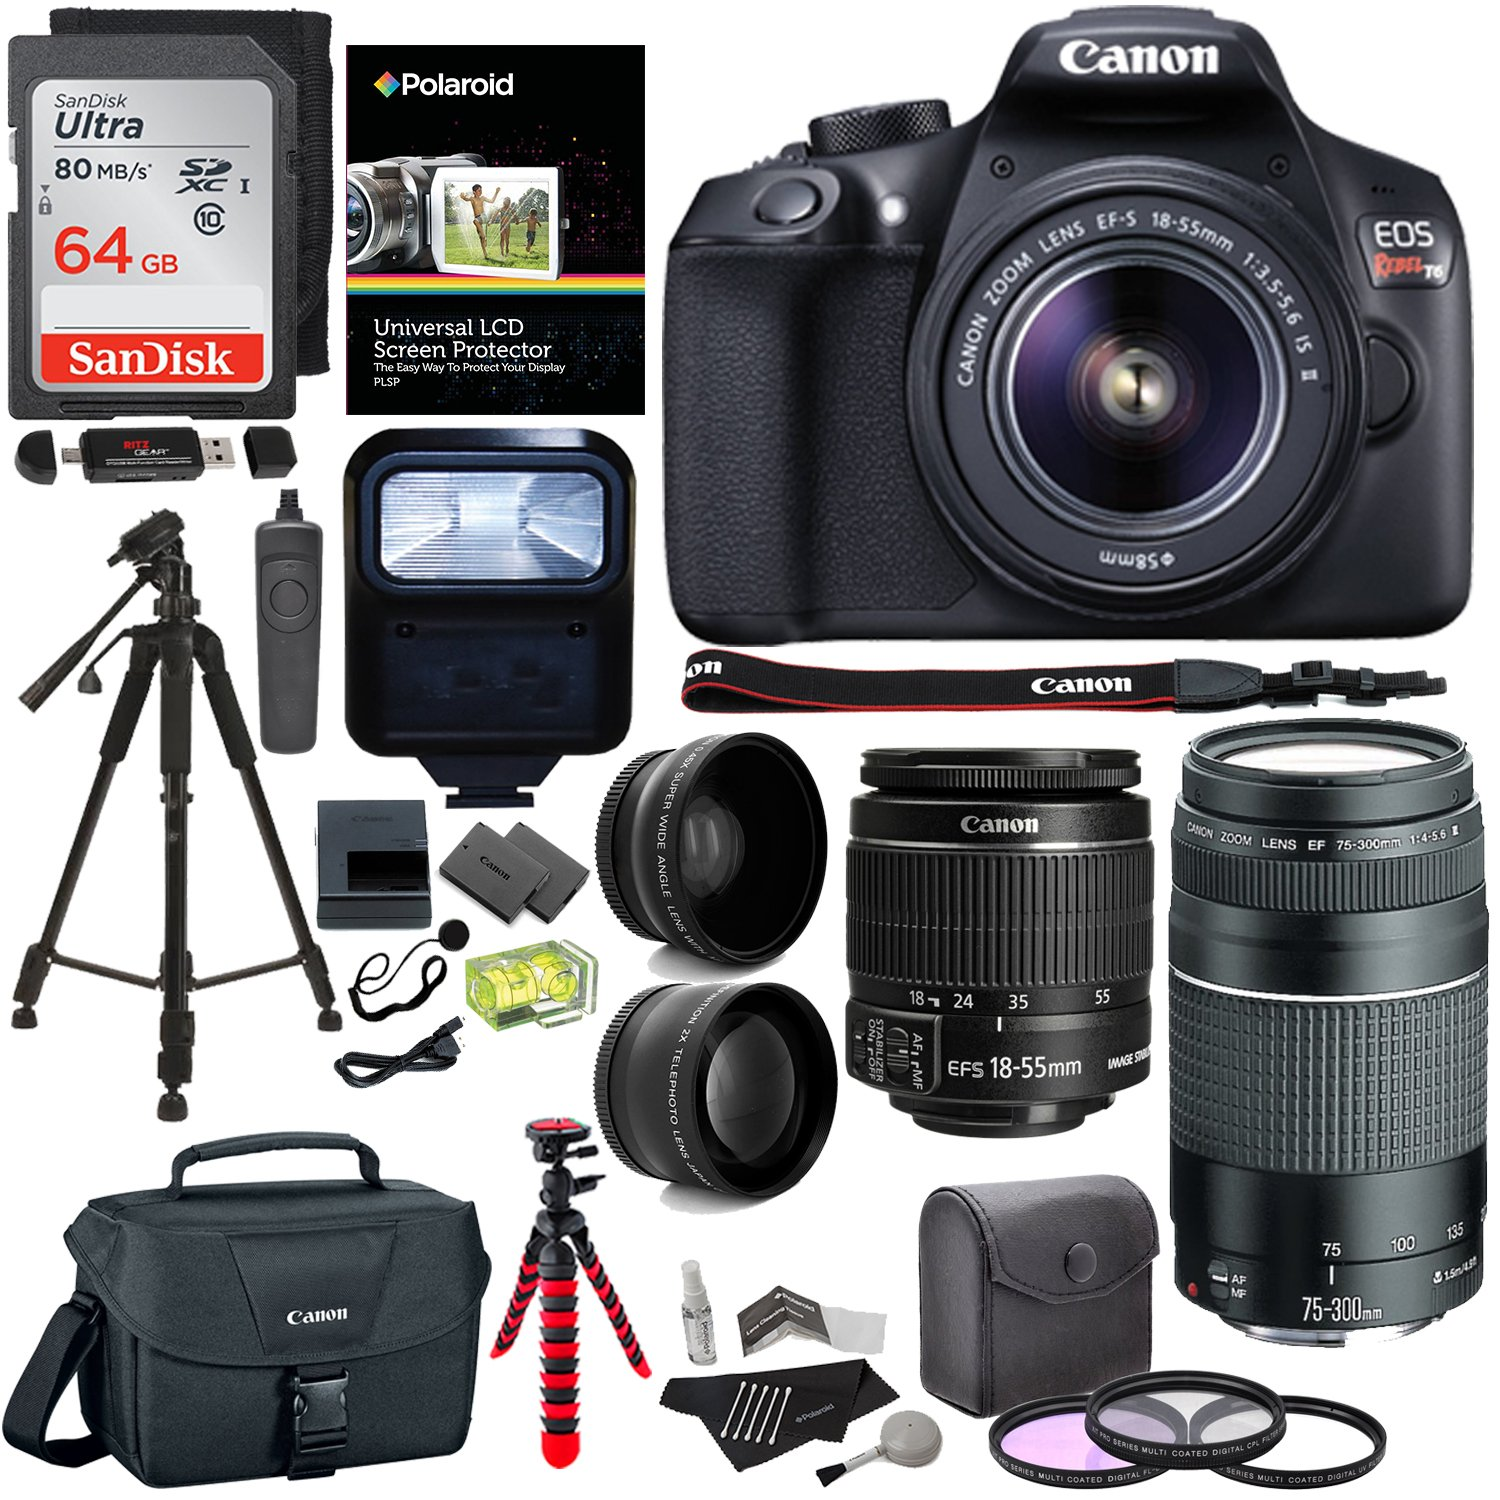 Canon EOS Rebel T6 DSLR Camera Kit, EF-S 18-55mm IS II Lens, EF 75-300mm III Lens, Polaroid Wide Angle, Telephoto Lens, 64GB and Accessory Bundle by Ritz Camera